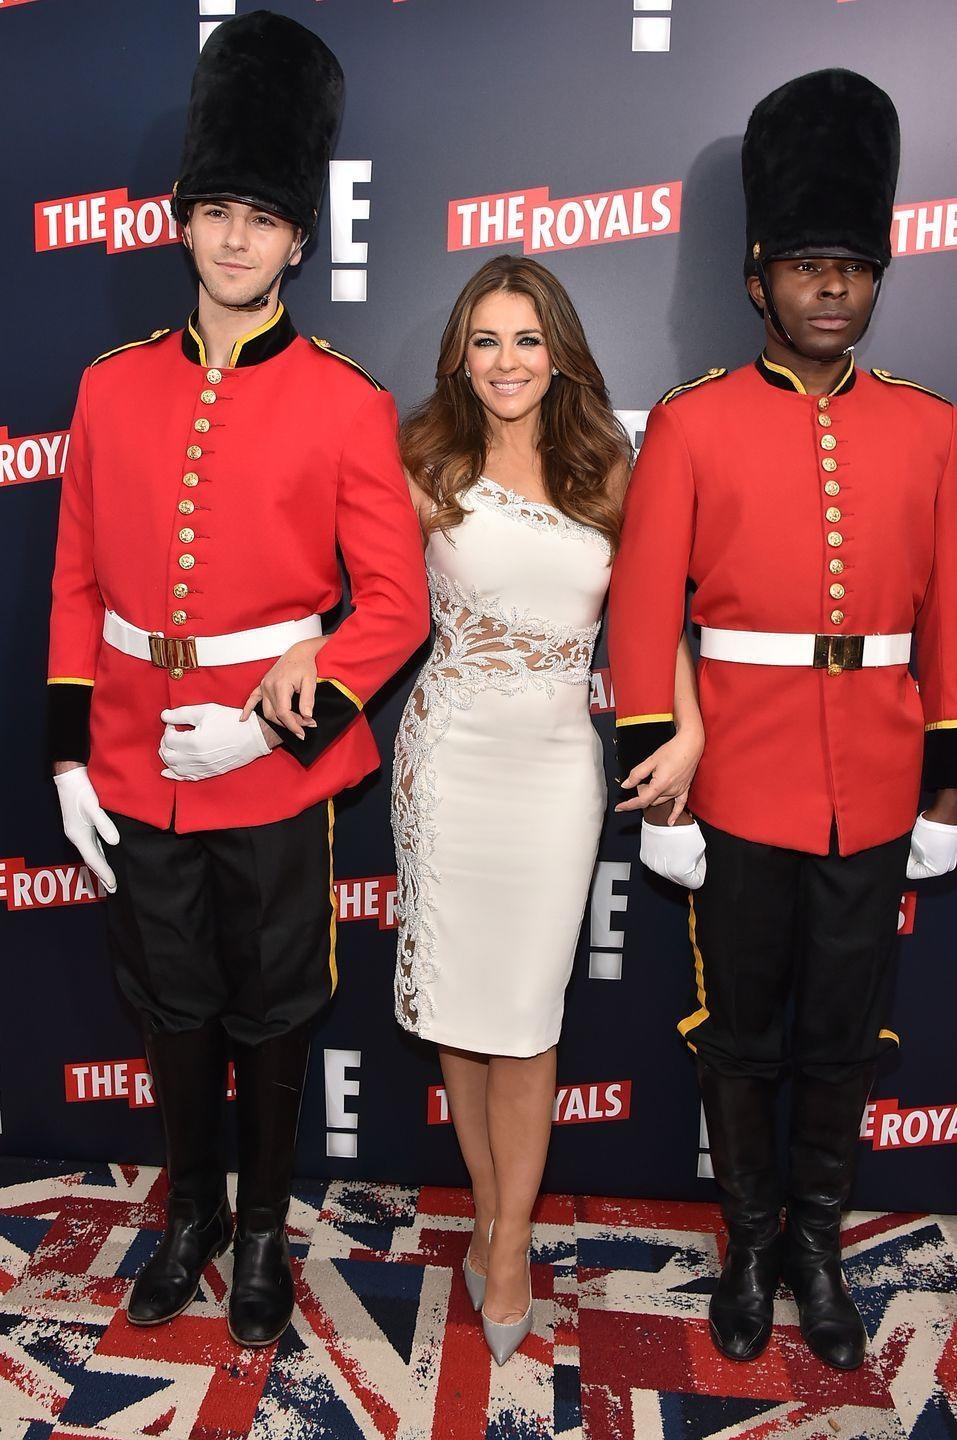 <p>In 2015, Elizabeth started her stint as Queen Helena on the E! soap opera <em>The Royals</em>. The series was on the air for four seasons, but was sadly cancelled in 2018.</p>